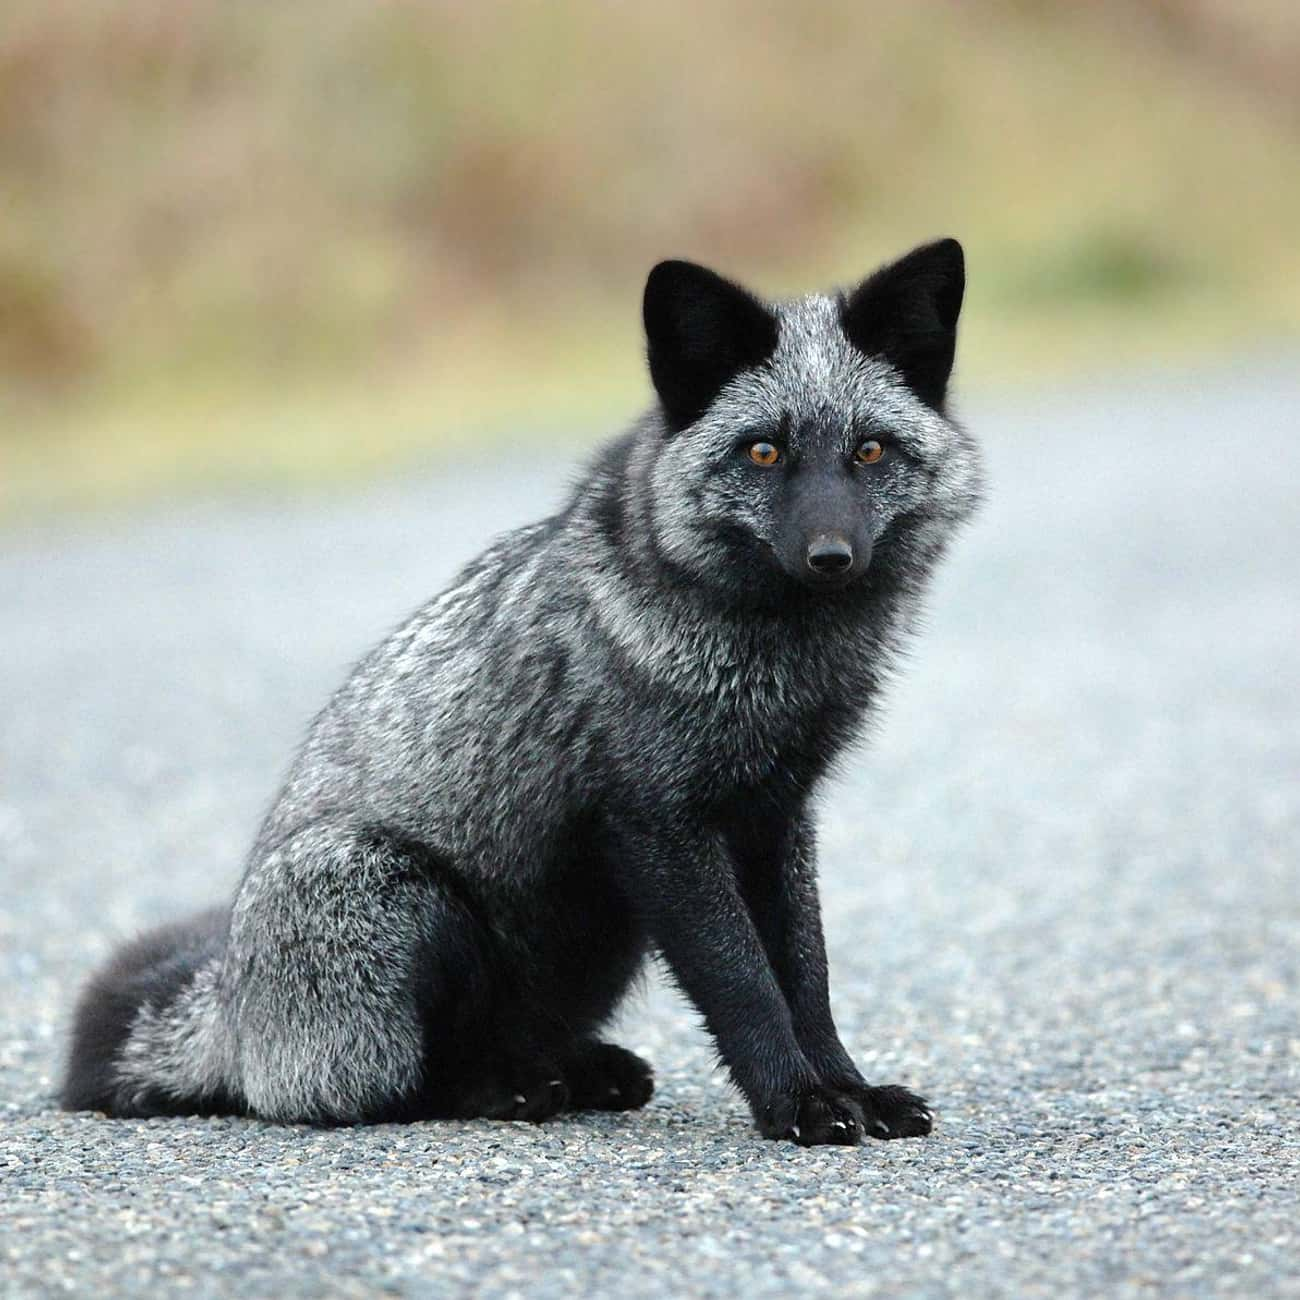 Red Fox is listed (or ranked) 1 on the list 17 Photos Of Melanistic (All Black) Animals That'll Leave You In Awe Of Mother Nature